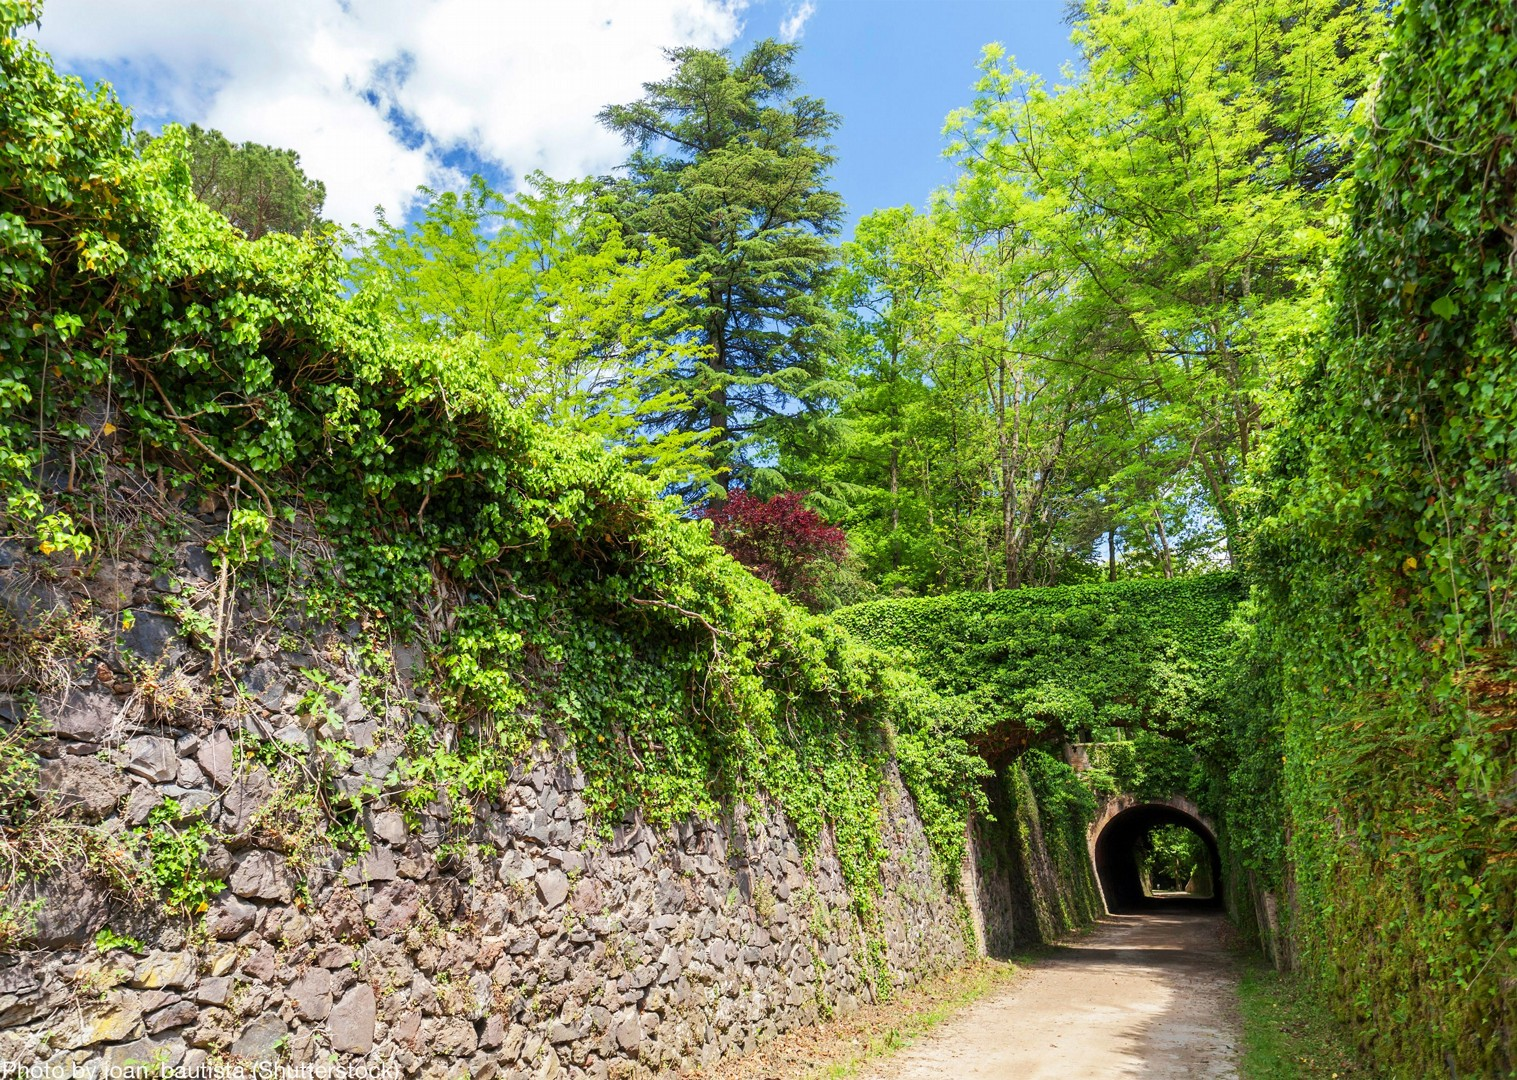 cobbled-streets-and-stunning-greenery-to-experience-at-your-leisure.jpg - Spain - Greenways of Catalonia - Self-Guided Leisure Cycling Holiday - Leisure Cycling